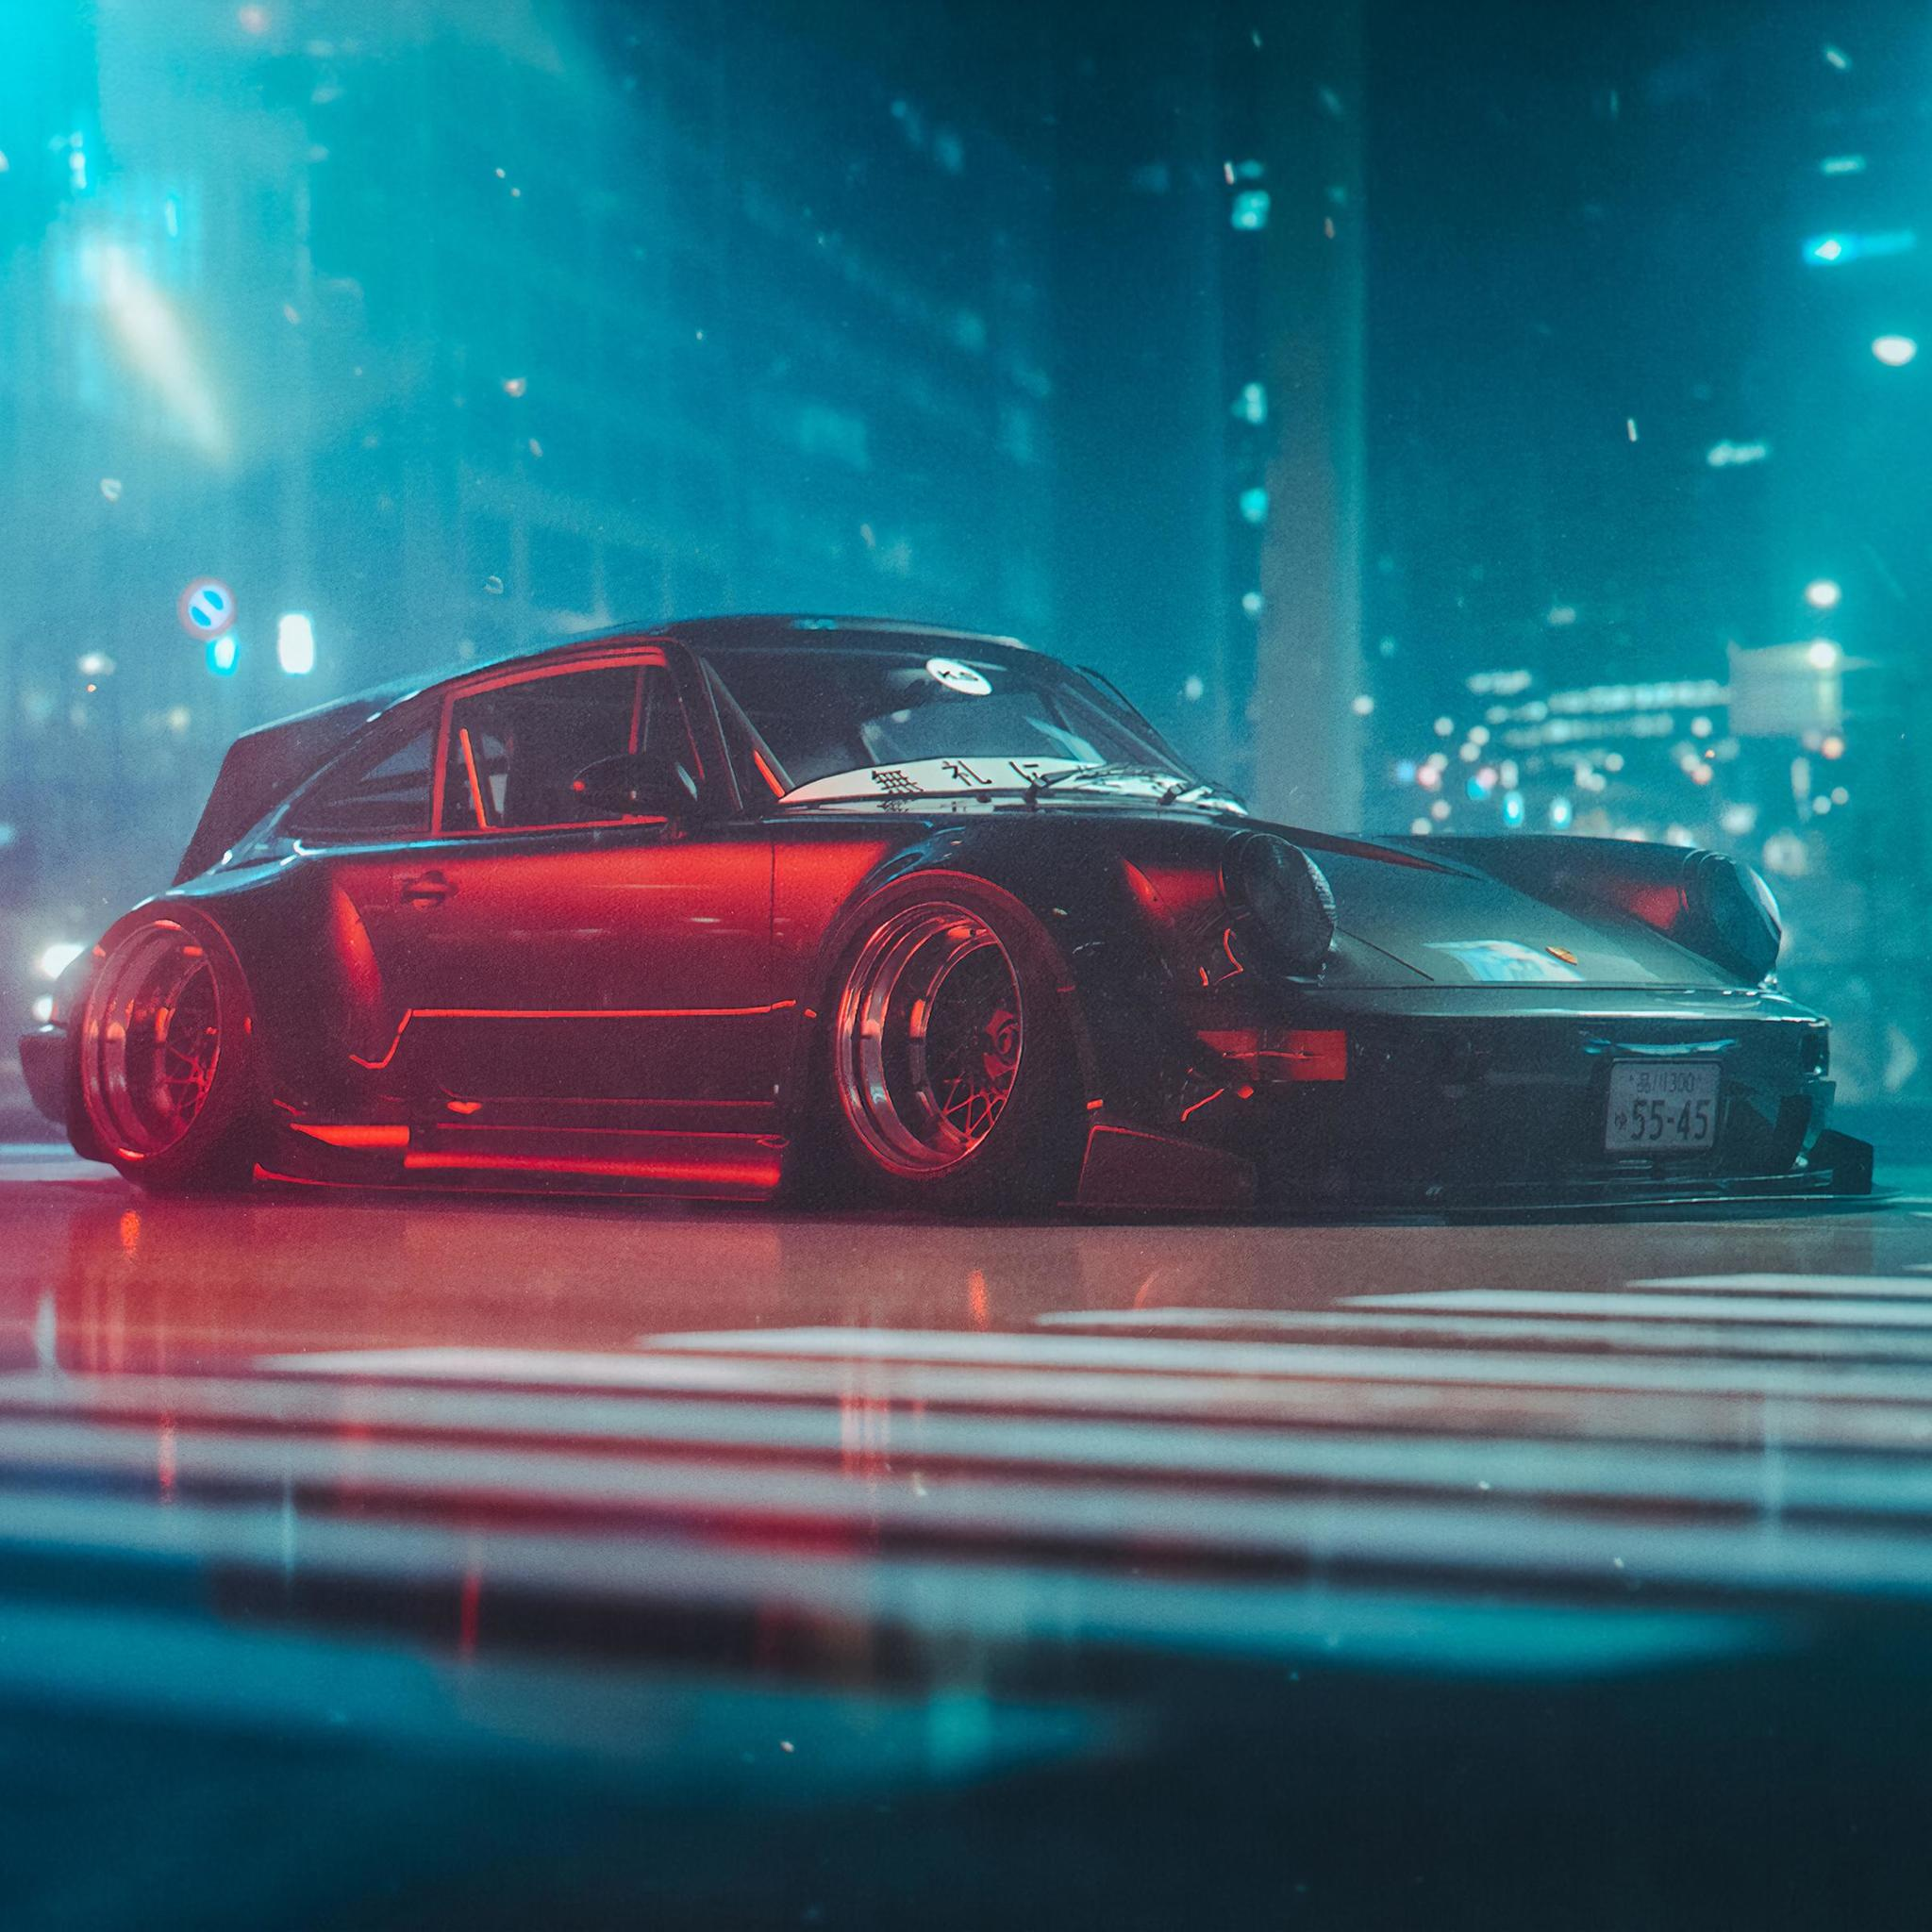 Rwb 964 Wagon Wallpaper   Khyzyl Saleem 1330034   HD Wallpaper 2048x2048